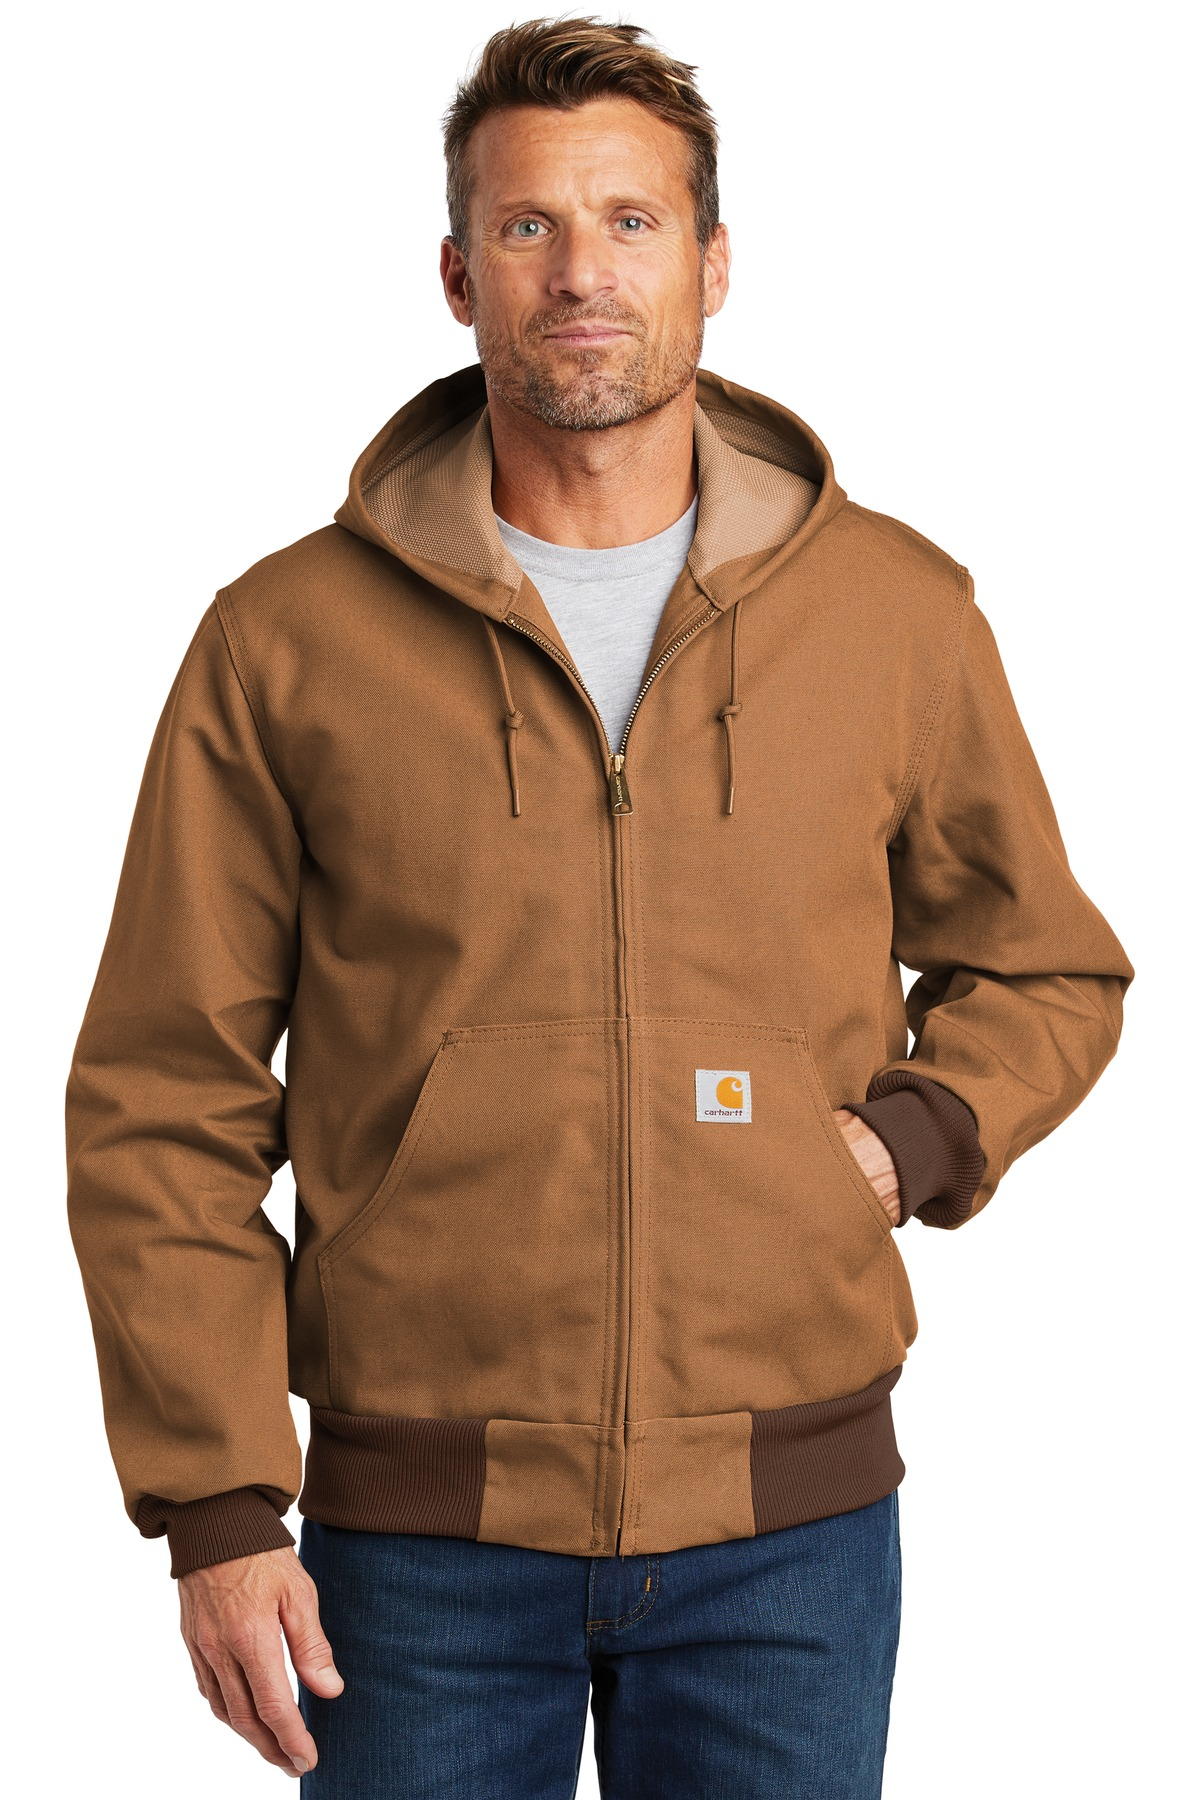 Carhartt  ®  Tall Thermal-Lined Duck Active Jac. CTTJ131 - Carhartt Brown